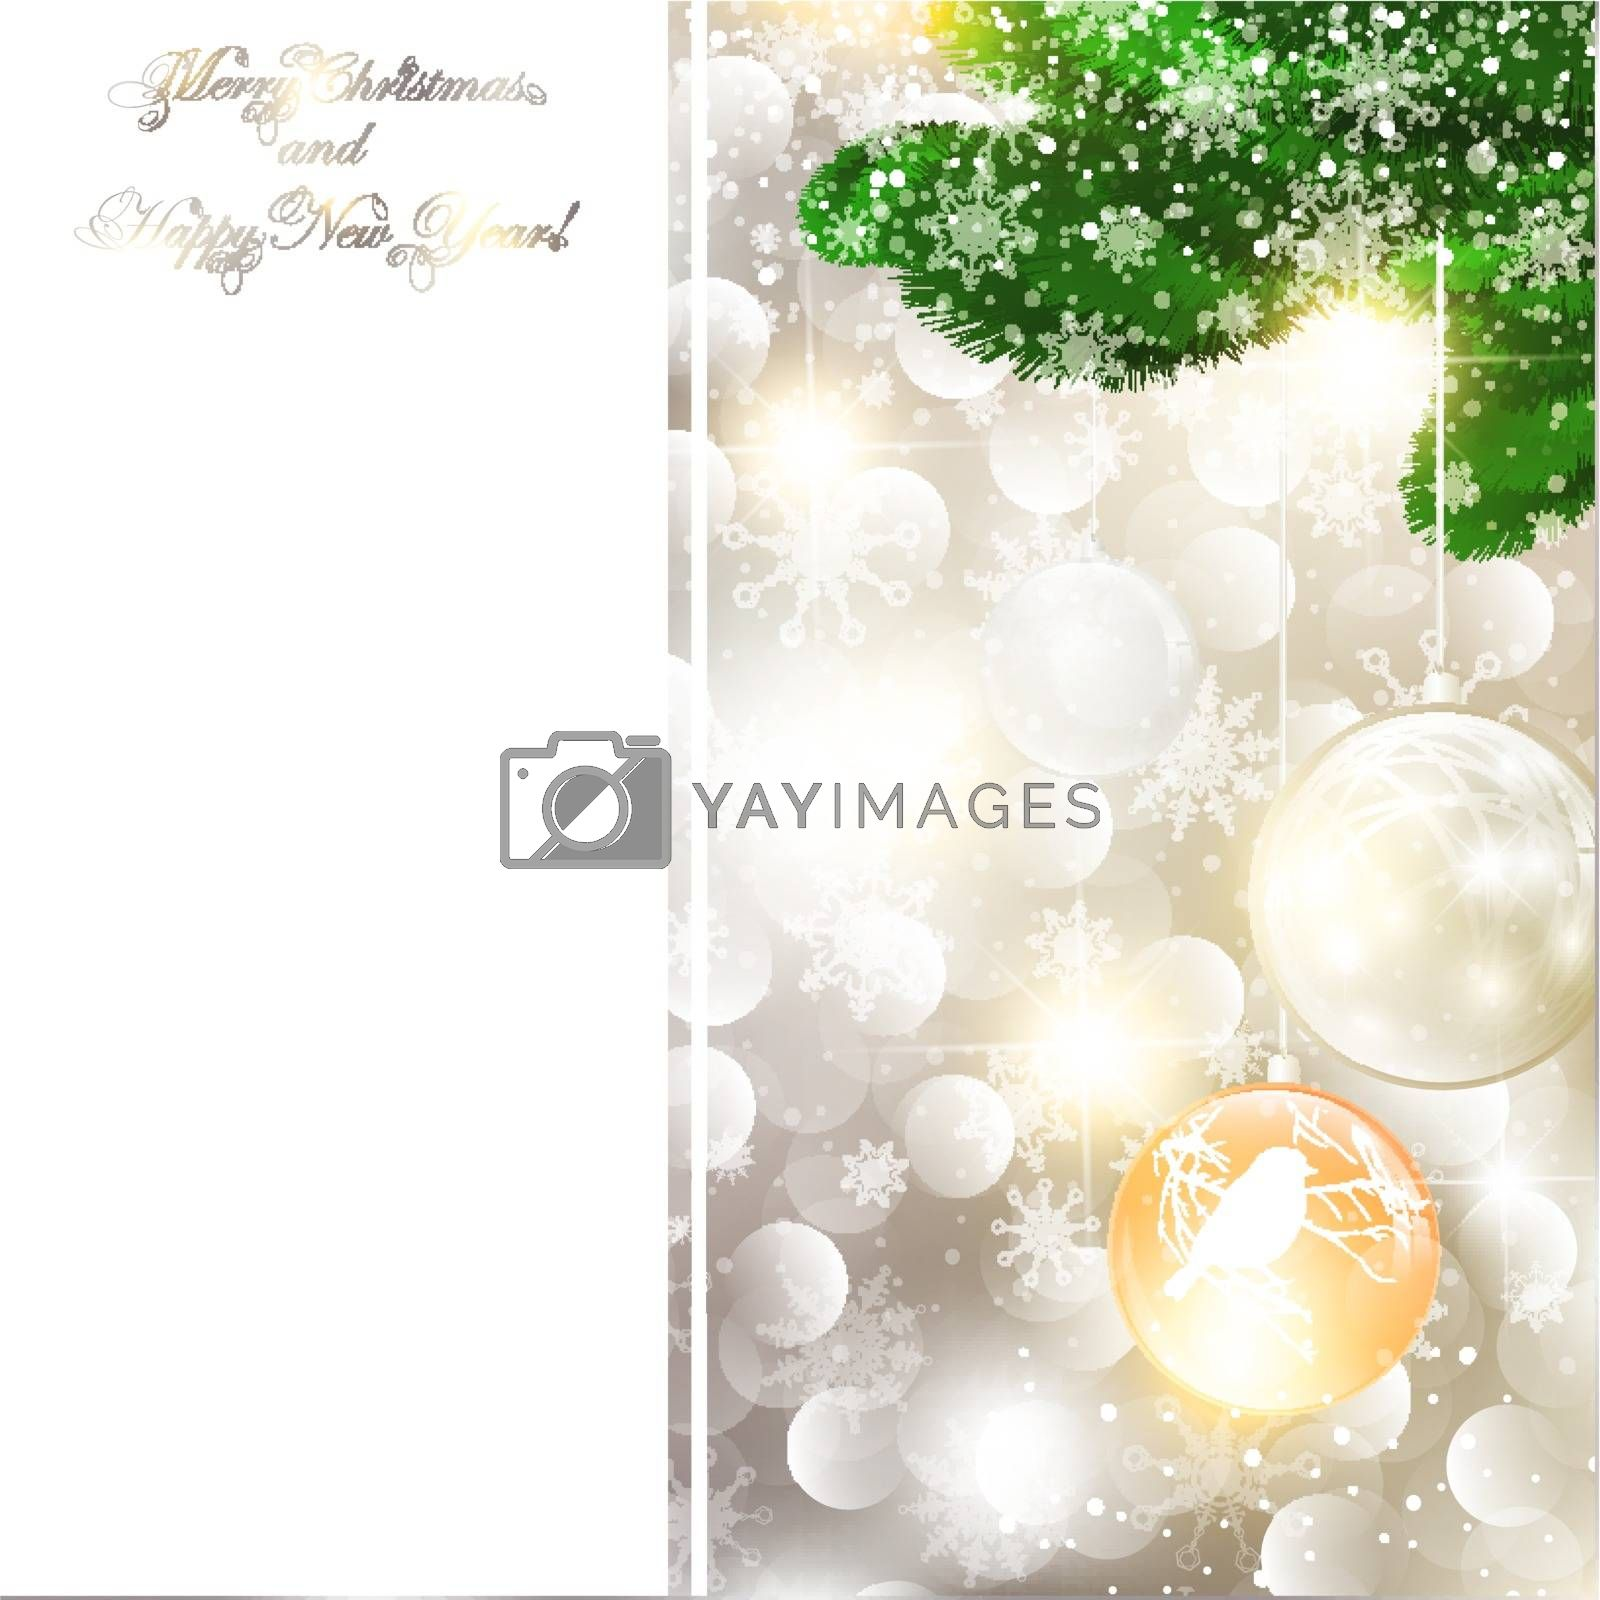 New Year and Christmas Greeting card, copyspace for your text